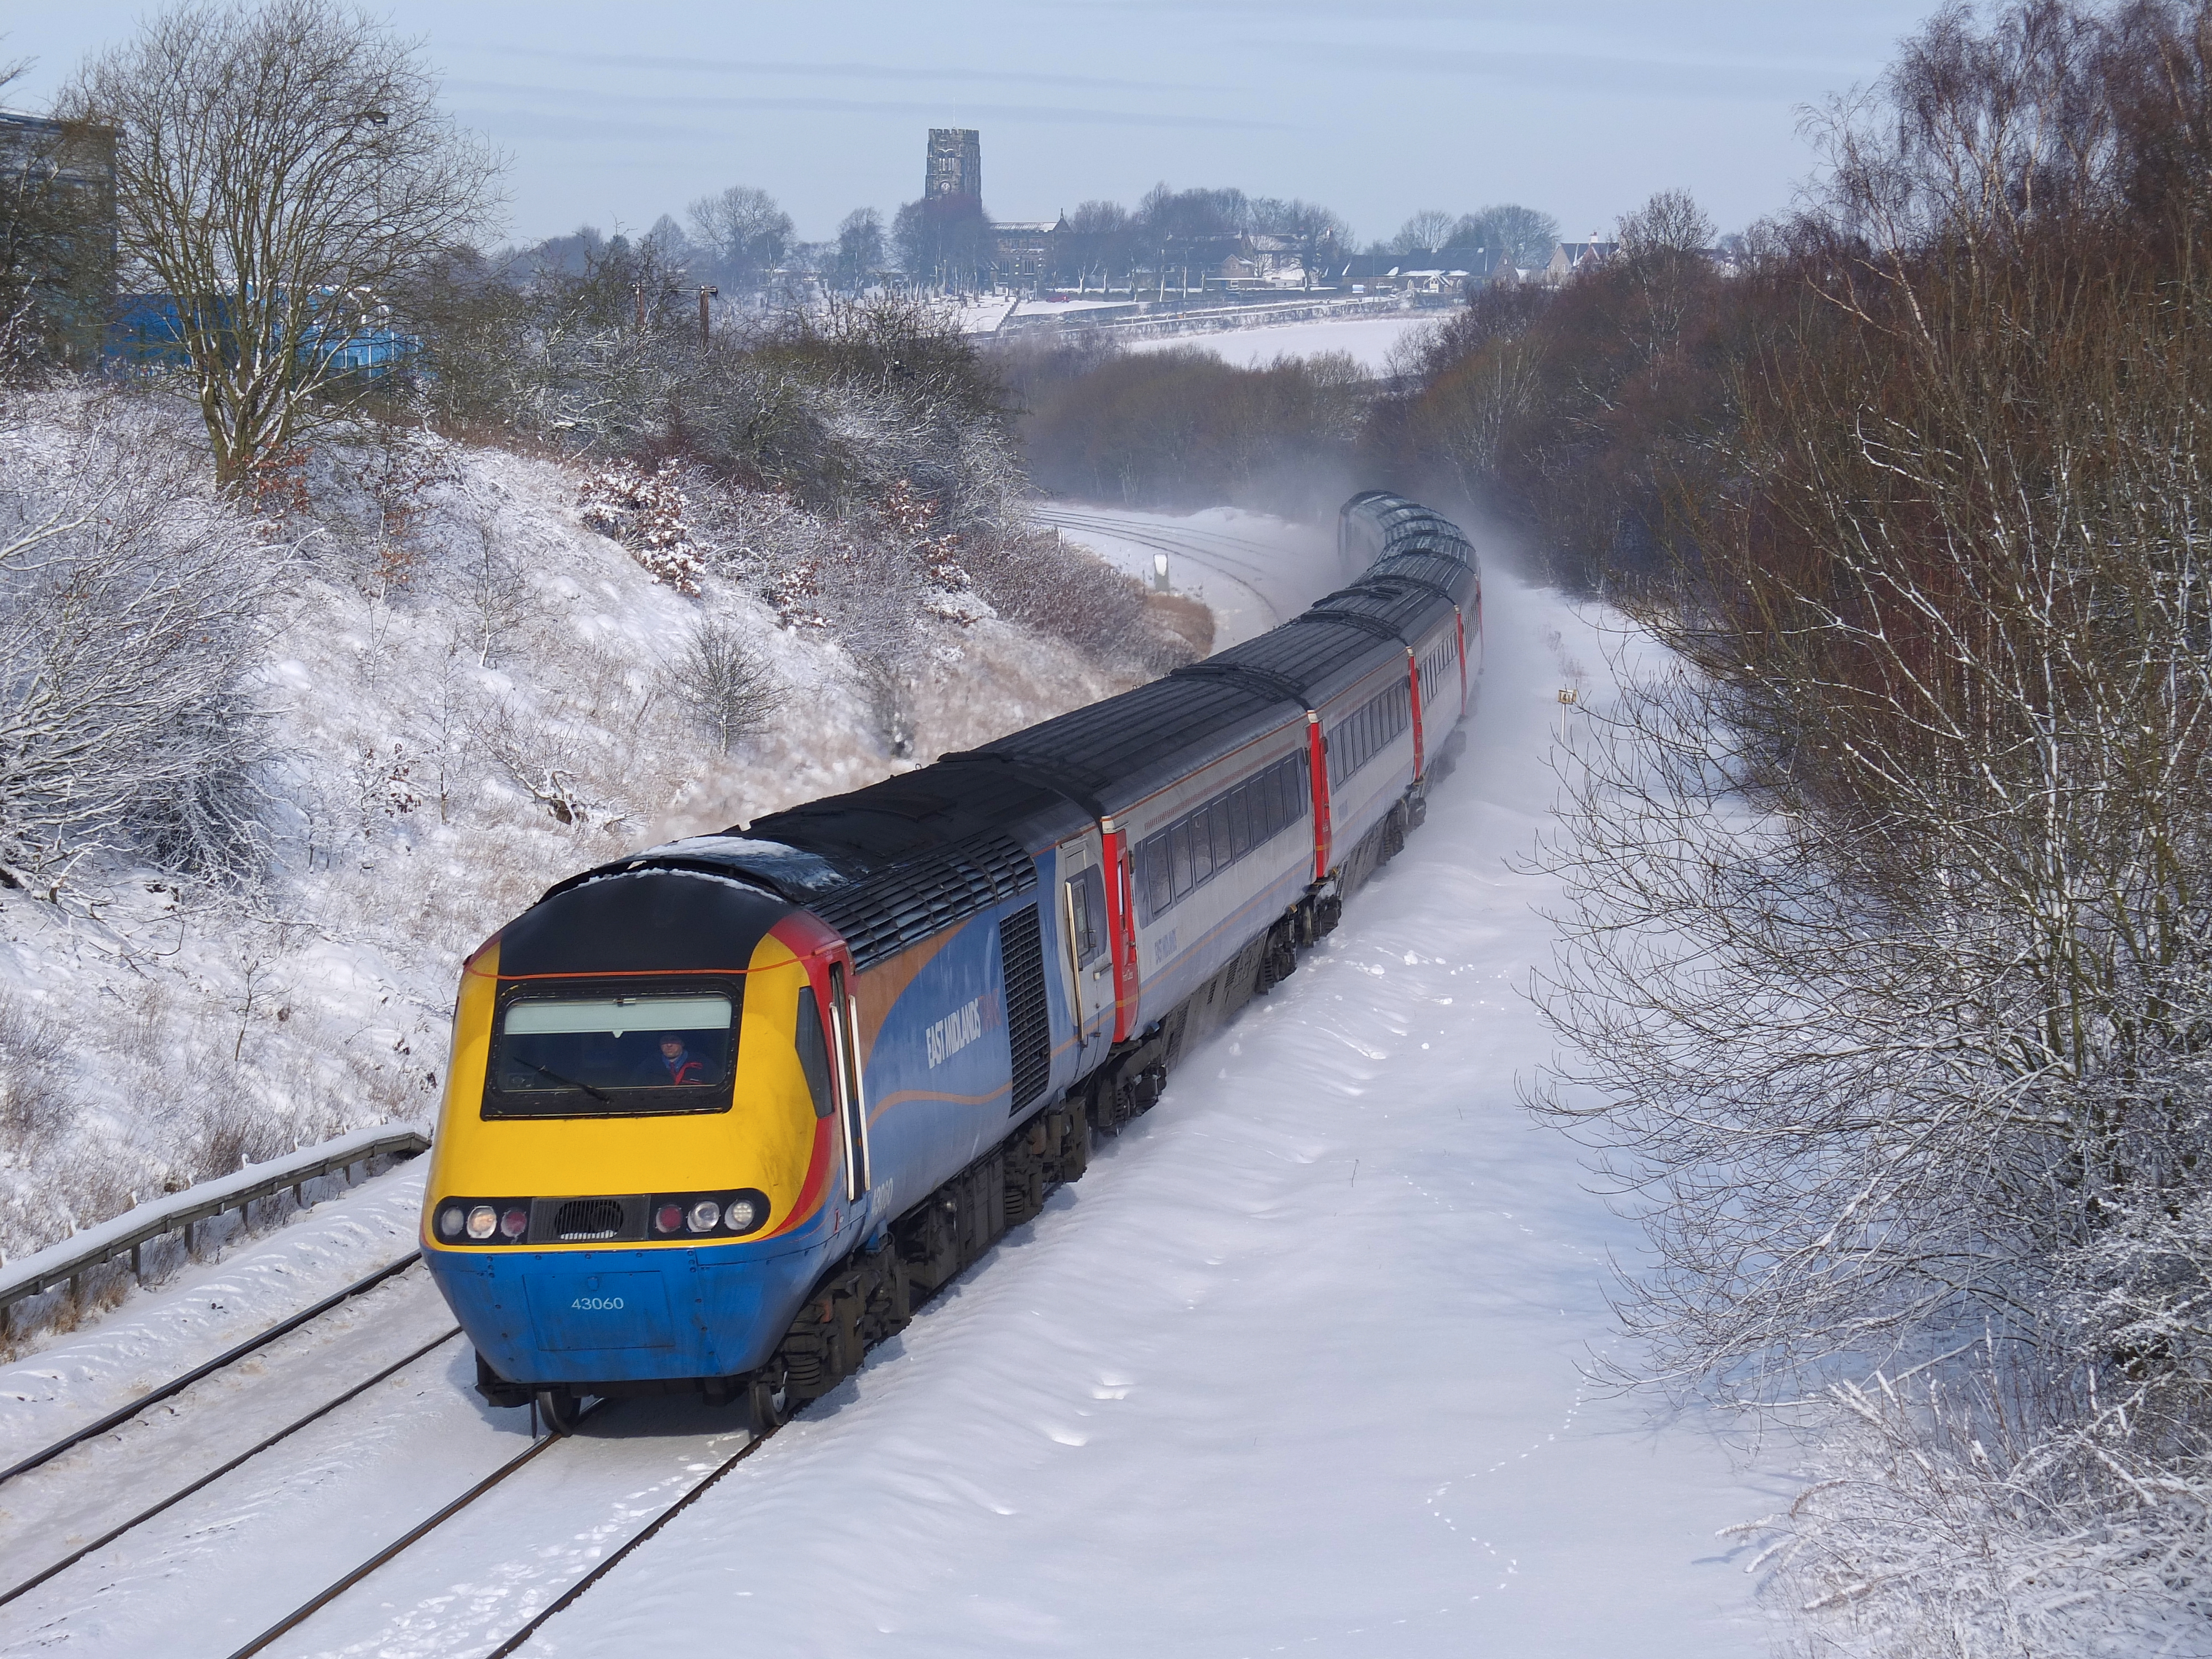 East midlands trains fotopic 7